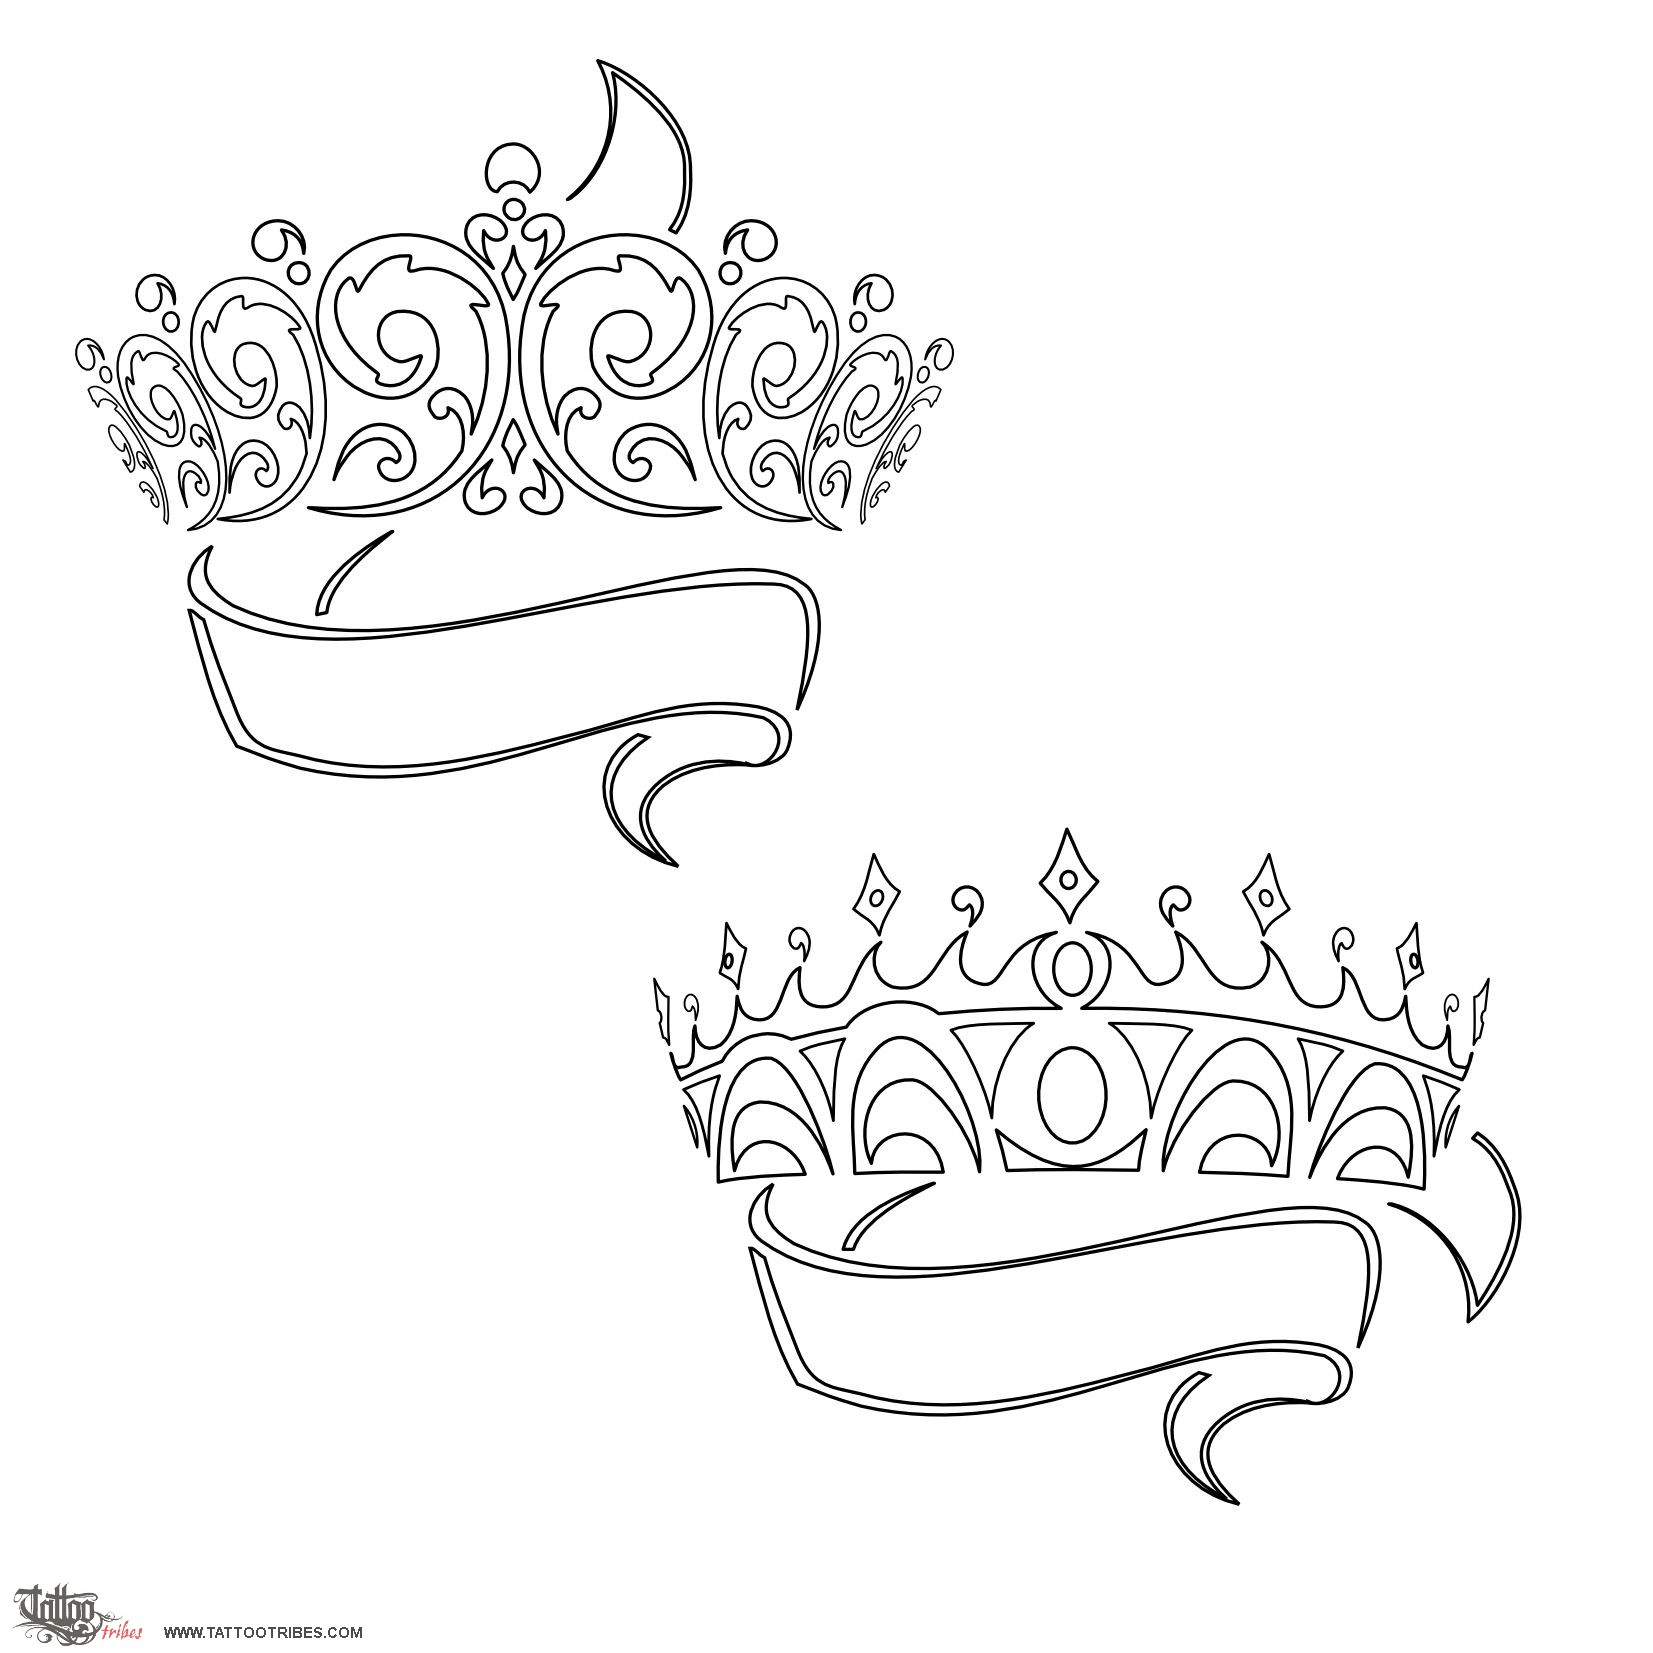 Stencil King Crown: Tattoo Of Crowns, Sovereignty Tattoo